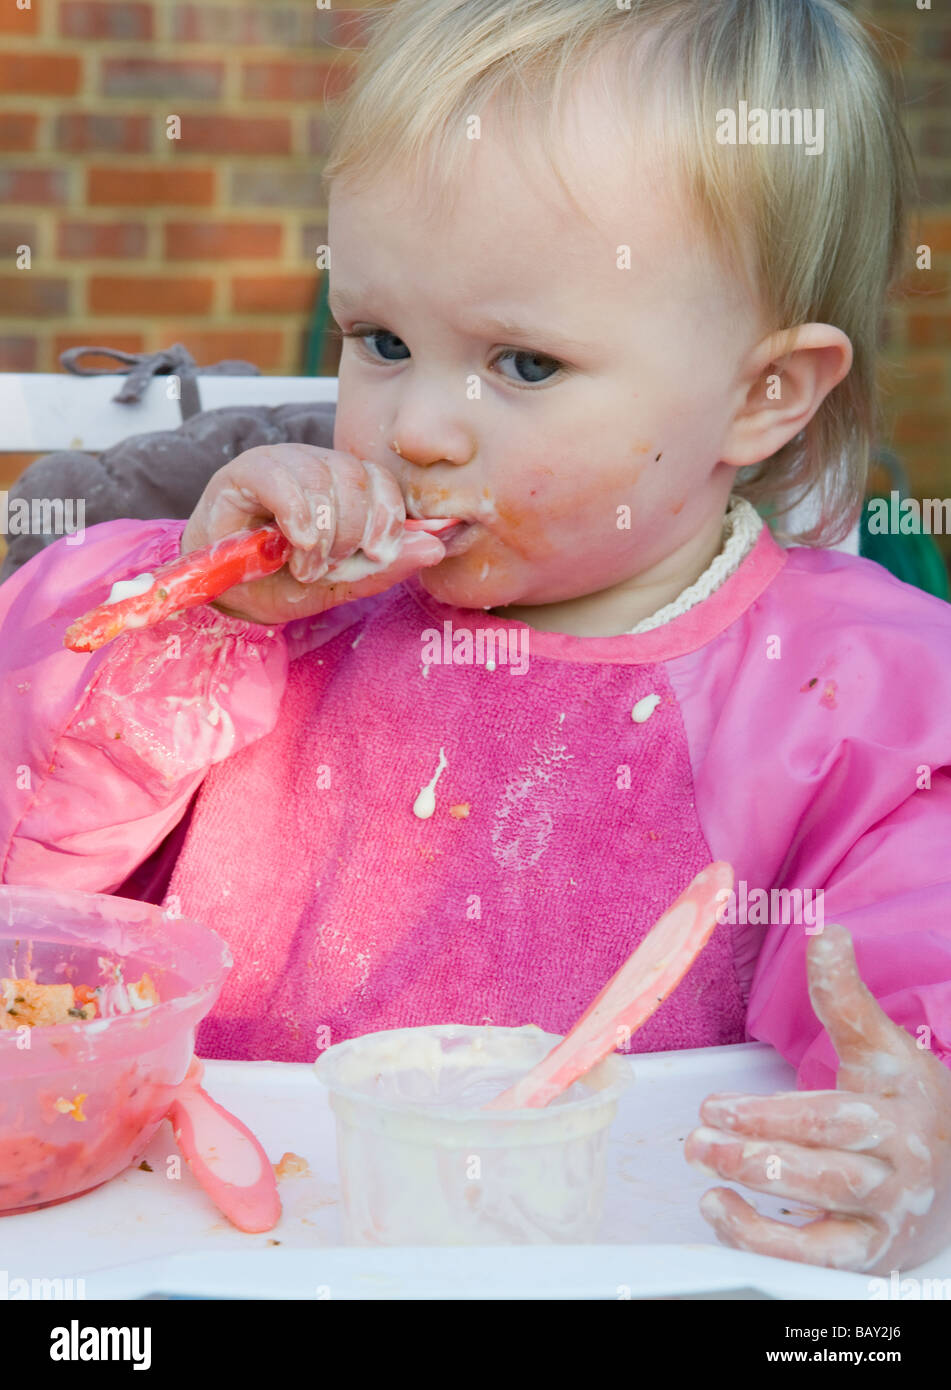 Toddler, 16months old,  girl , feeding herself and causing a mess - Stock Image